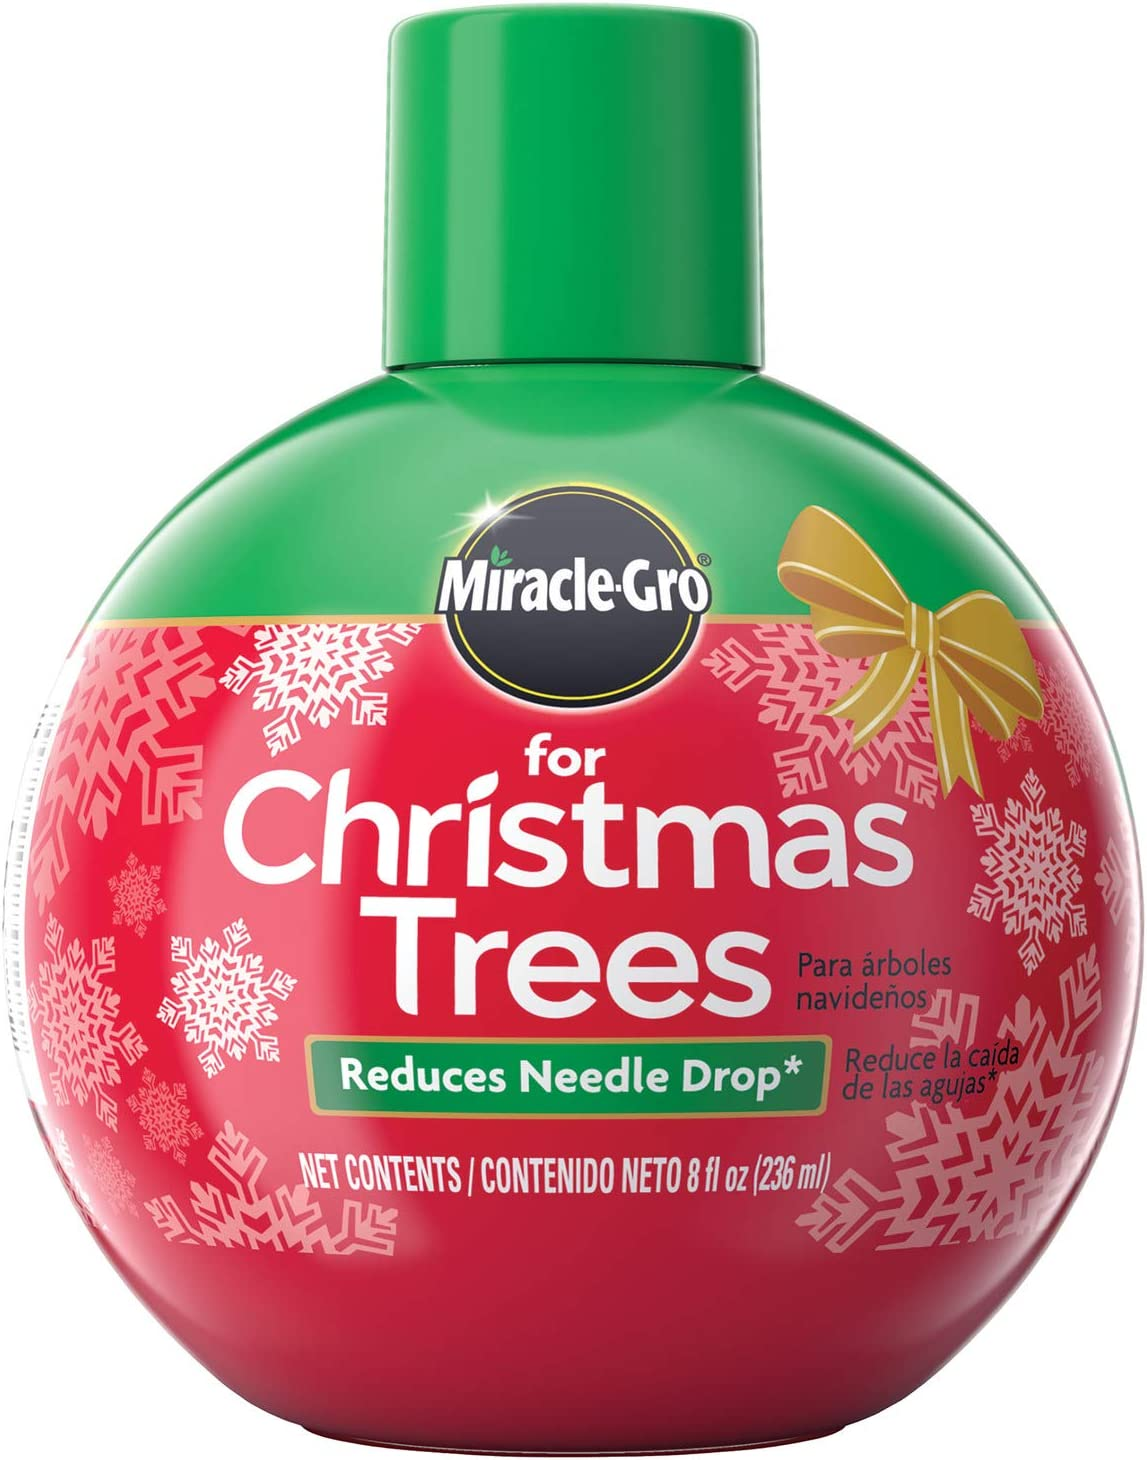 Miracle-Gro VB300515-2 Plant Food, Hydrates Keeps Green All Holiday Season, 2-Pack Christmas Trees, 2 Pack, red